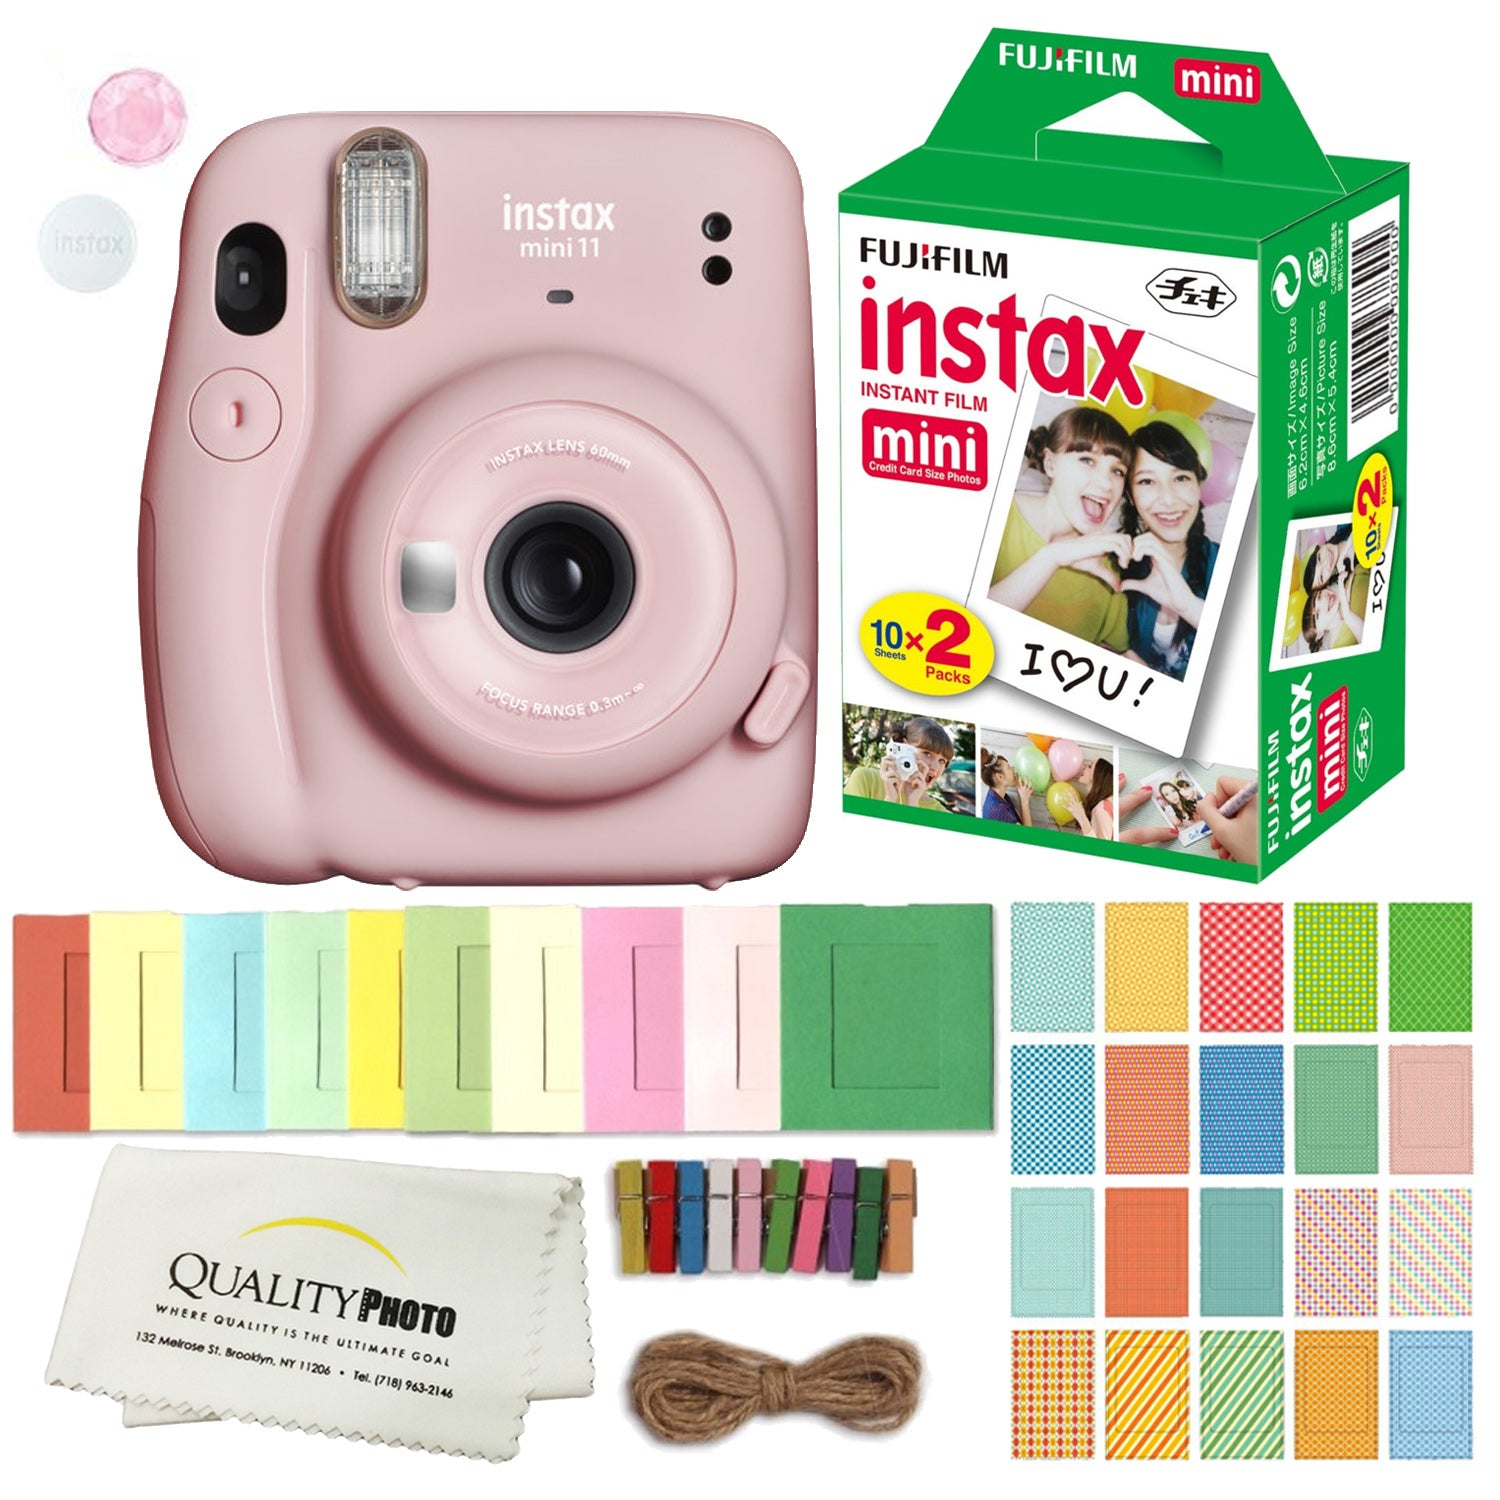 FUJIFILM INSTAX Mini 11 Instant Film Camera (Blush Pink) Plus Instax Film and Accessories Stickers, Hanging frames and Microfiber Cloth